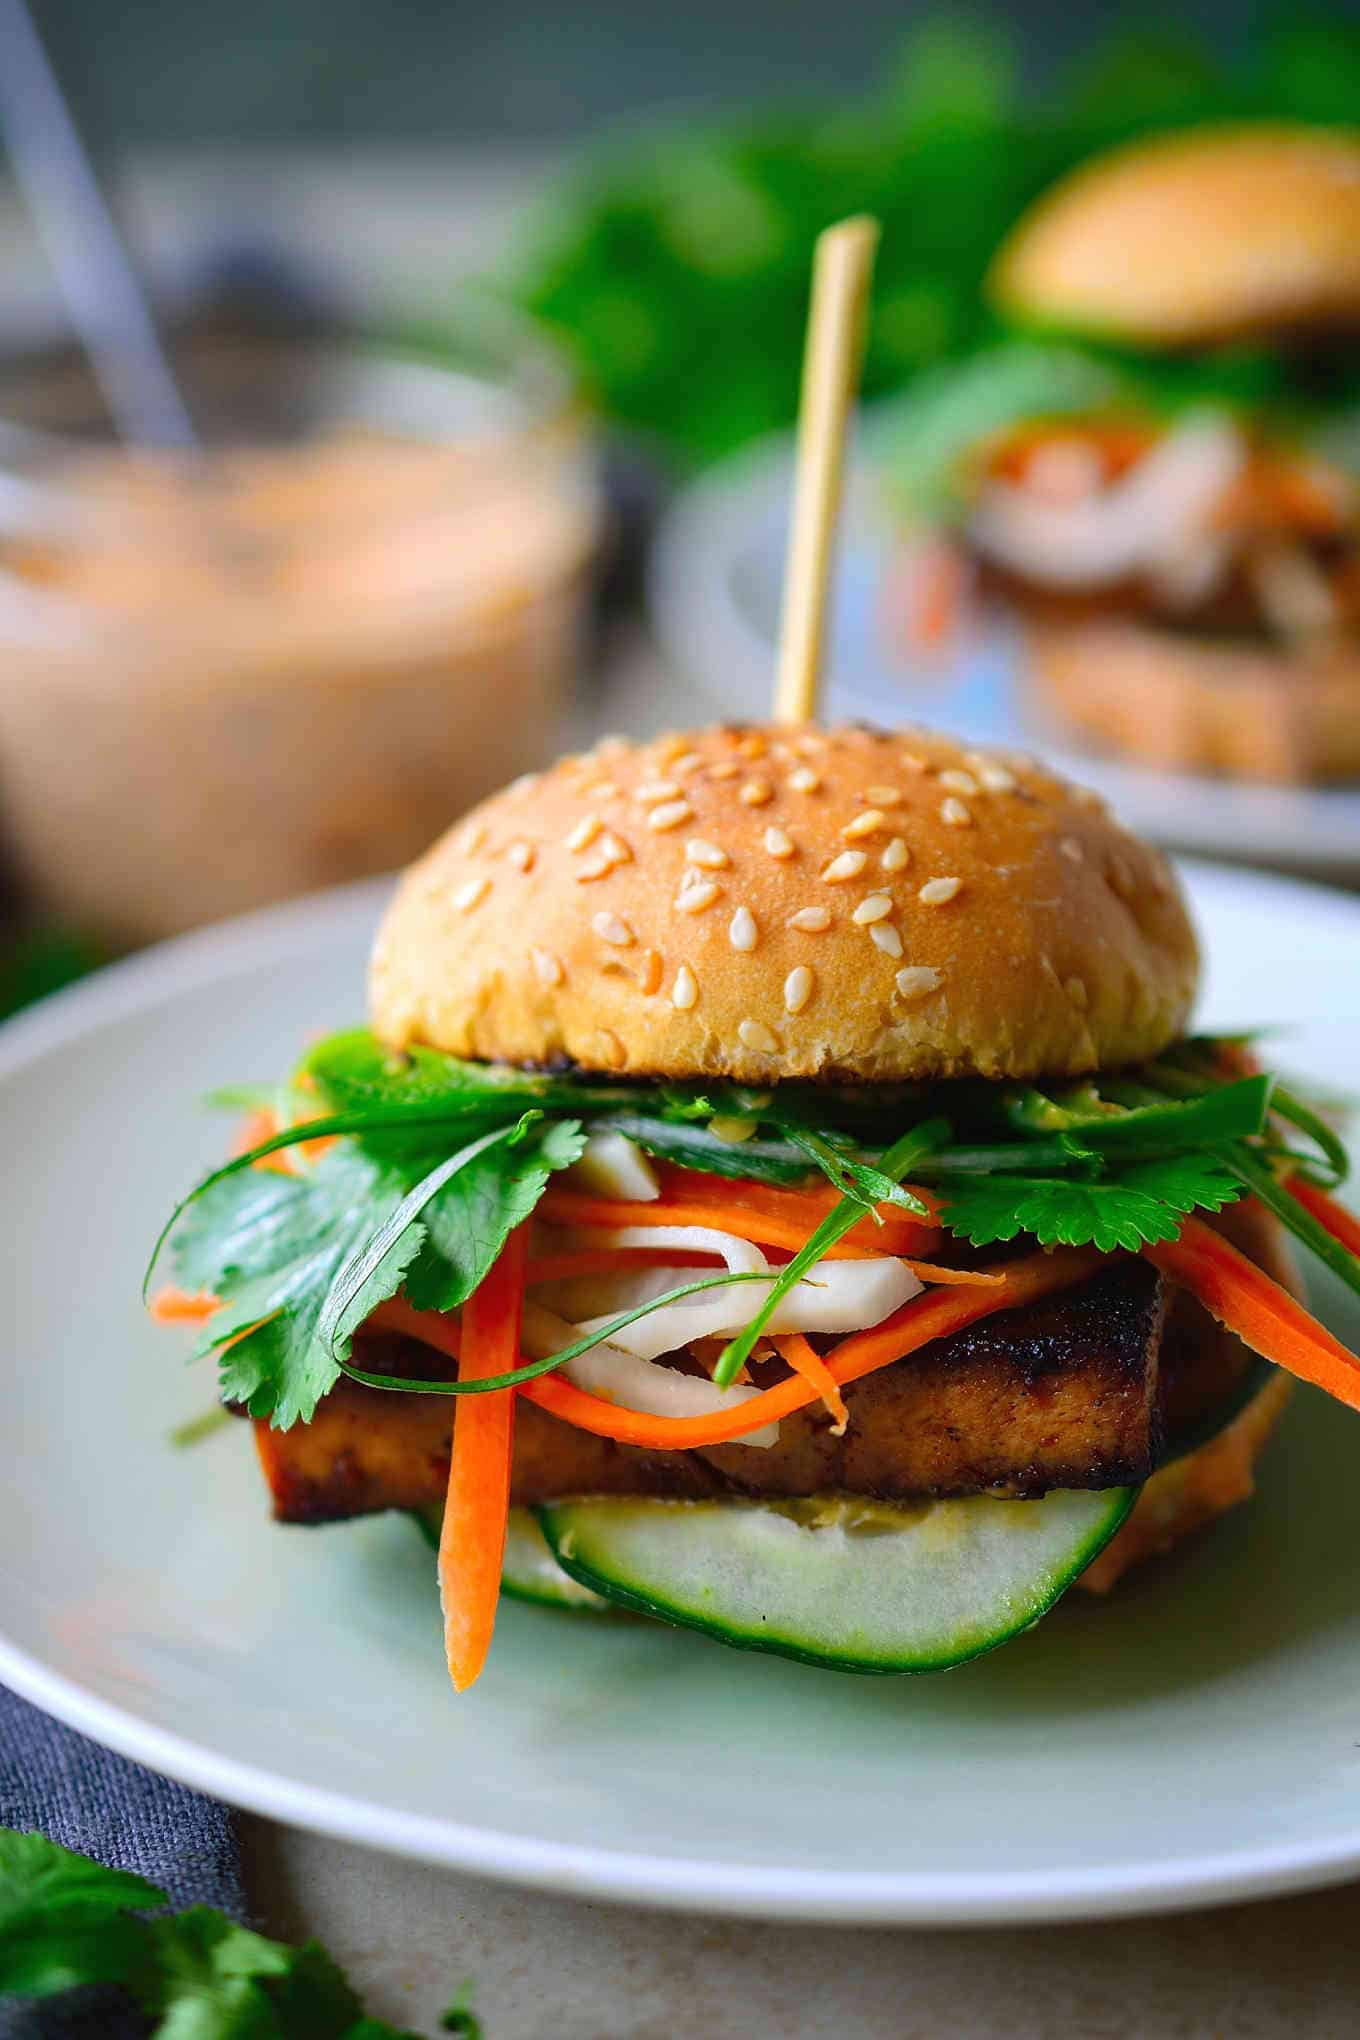 These tofu banh mi vegan sliders are packed with flavour and a fun twist on the classic banh mi sandwich. They're great as finger food or appetizers for a party, or as a delicious dinner served with fries or a salad.